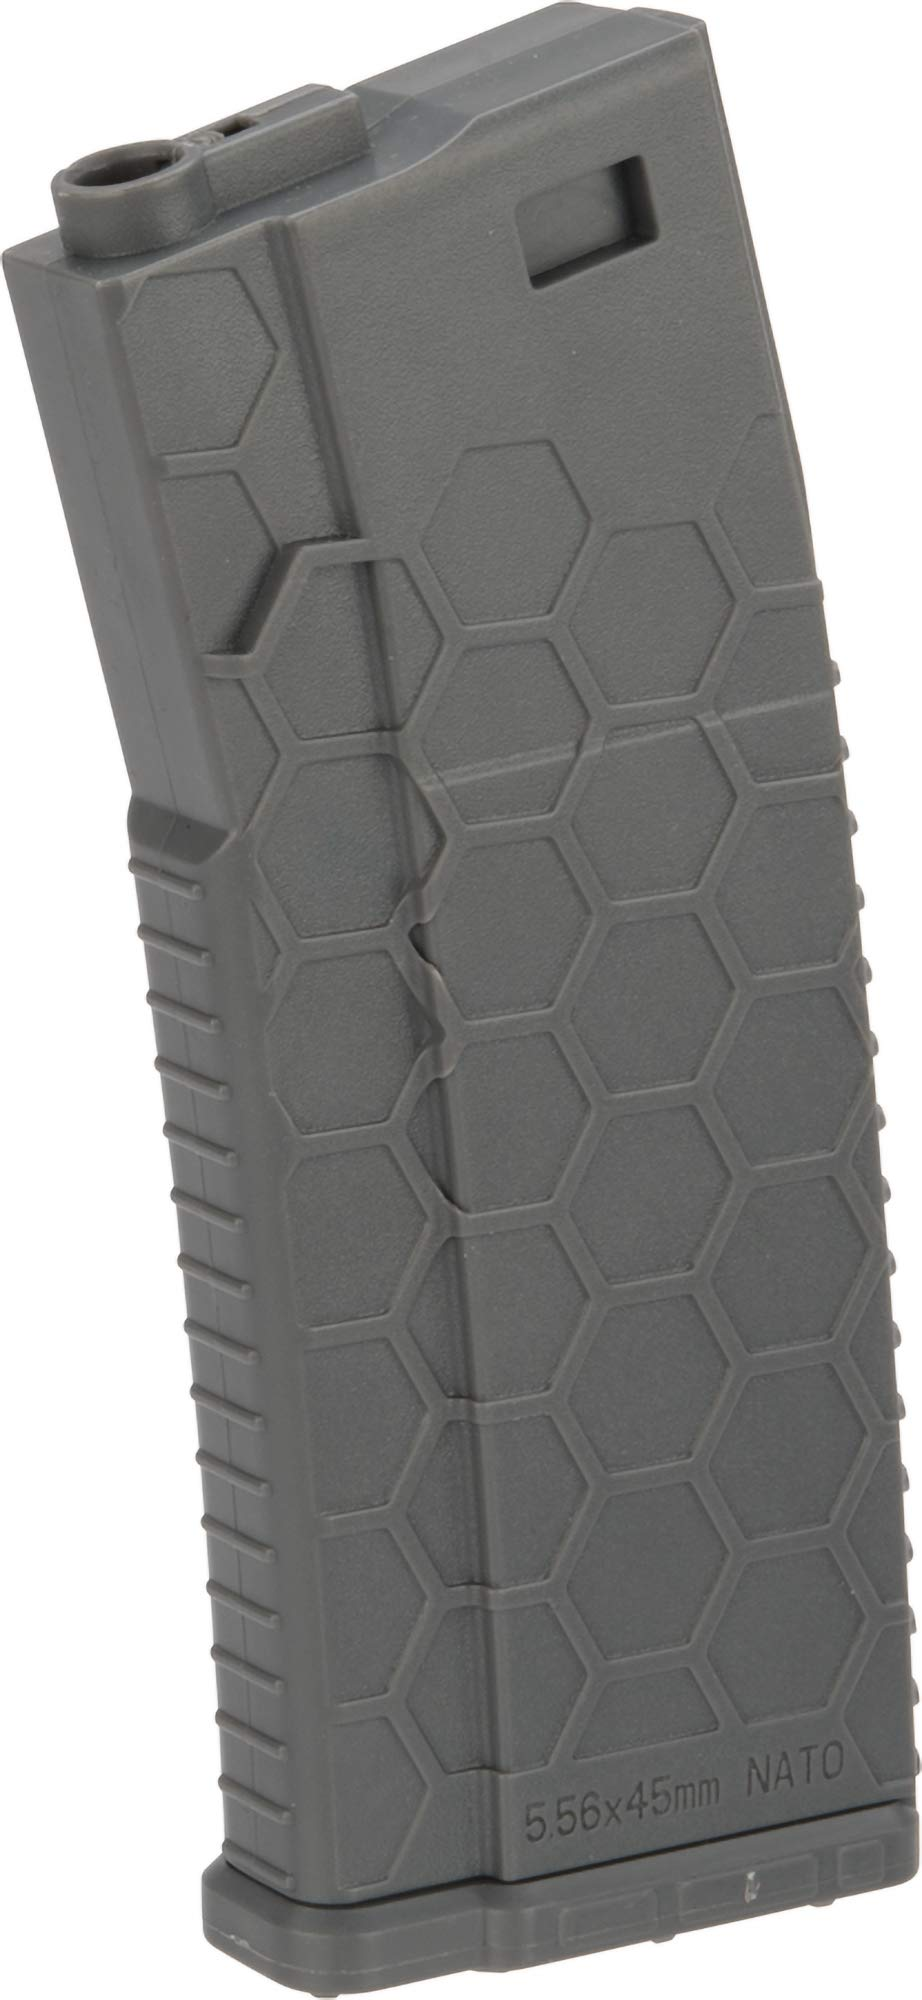 Evike Hexmag ECO Airsoft 120rds Polymer Mid-Cap Magazine for M4 / M16 Series Airsoft AEG Rifles(Color: Grey/Single) by Evike